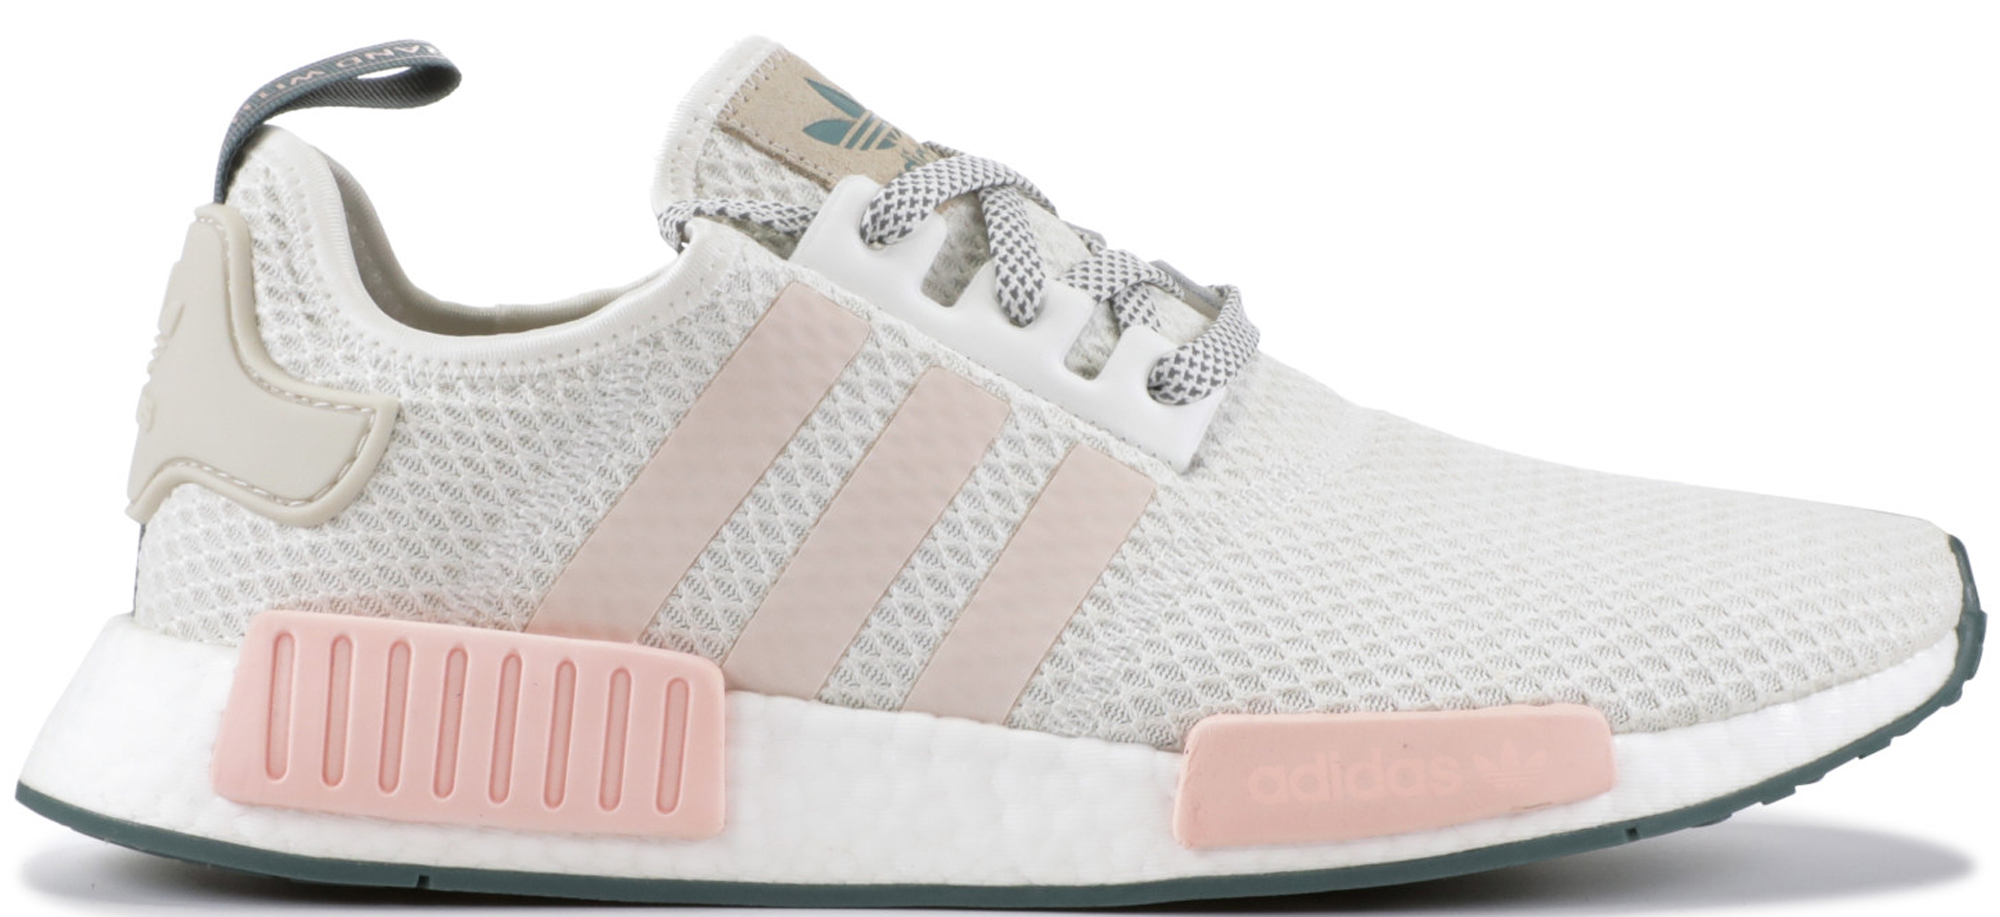 adidas nmd r1 white icey pink 54% di sconto sglabs.it